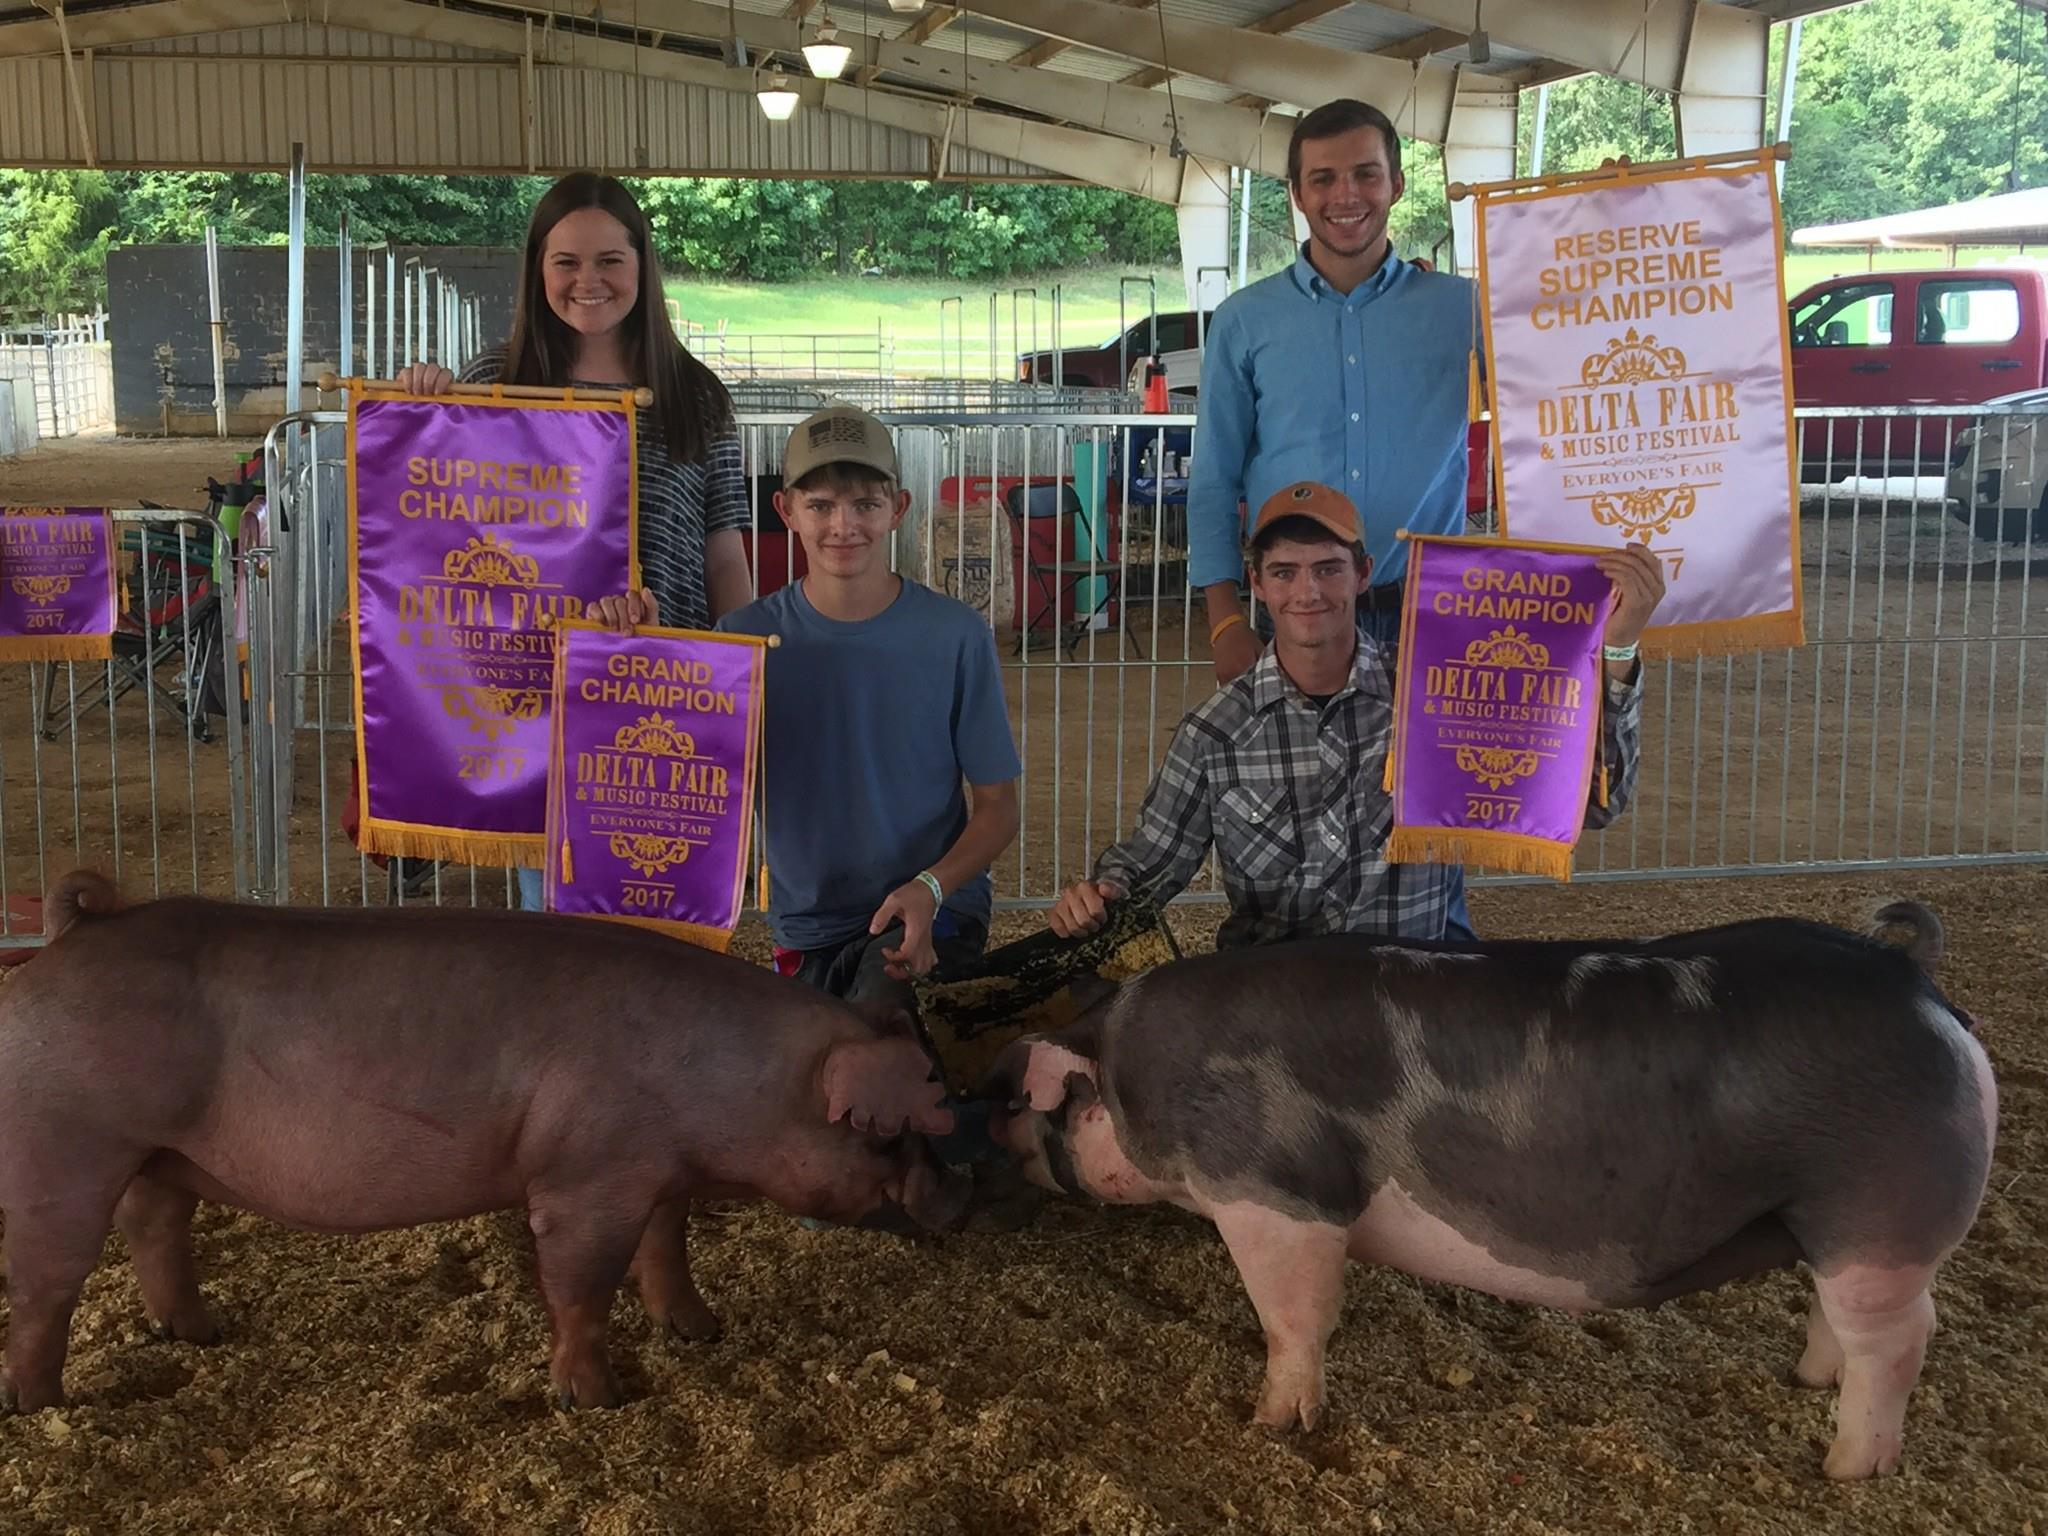 Will & Gill Derryberry 2017 Delta Fair & Music Festival Supreme Champion Overall Reserve Supreme Champion Overall